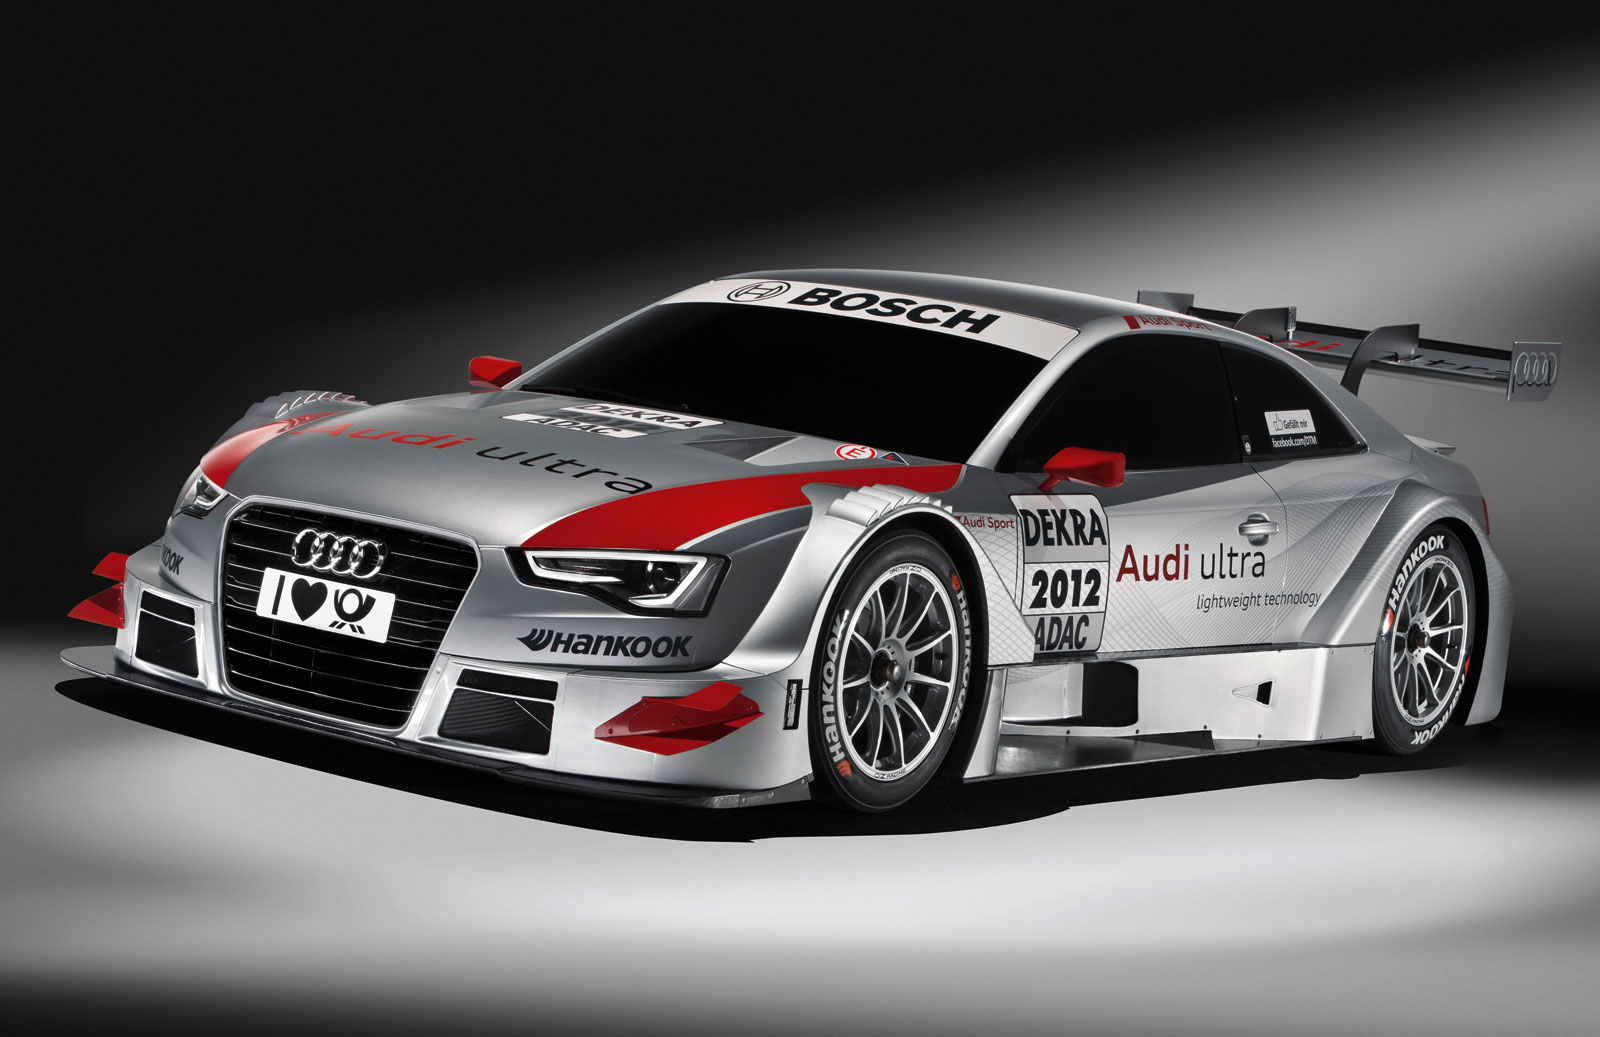 Audi A5 DTM Race Car hd Wallpapers 2012 1600x1037